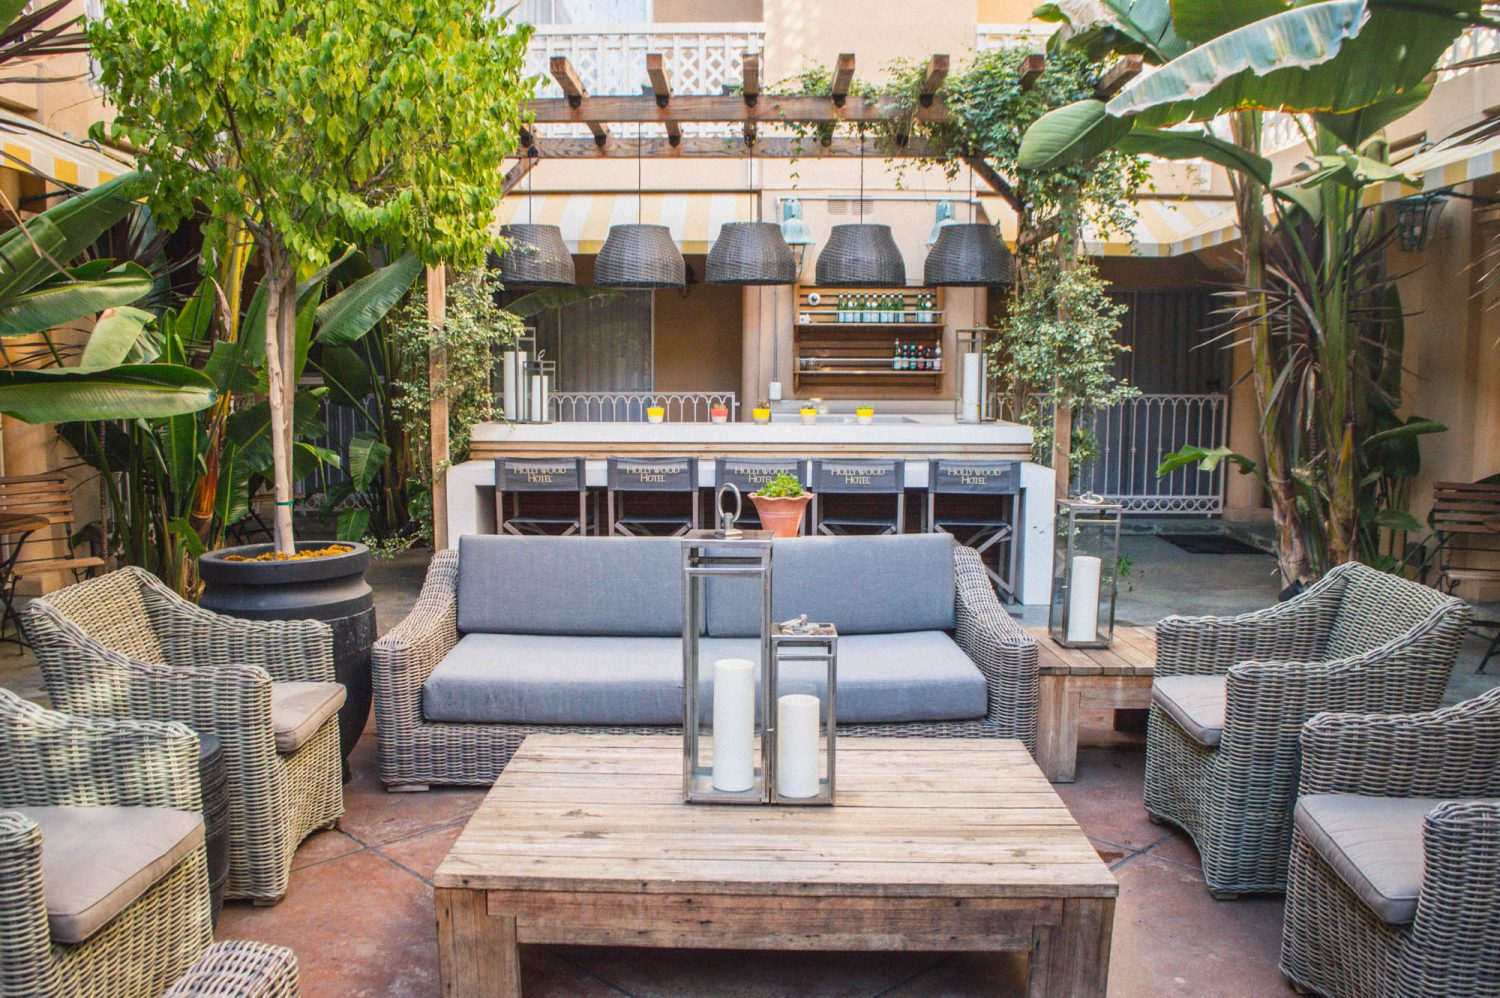 Hollywood Hotel review in Los Angeles! A great hotel for those seeking a central location in Hollywood with comfortable rooms and pleasant staff.